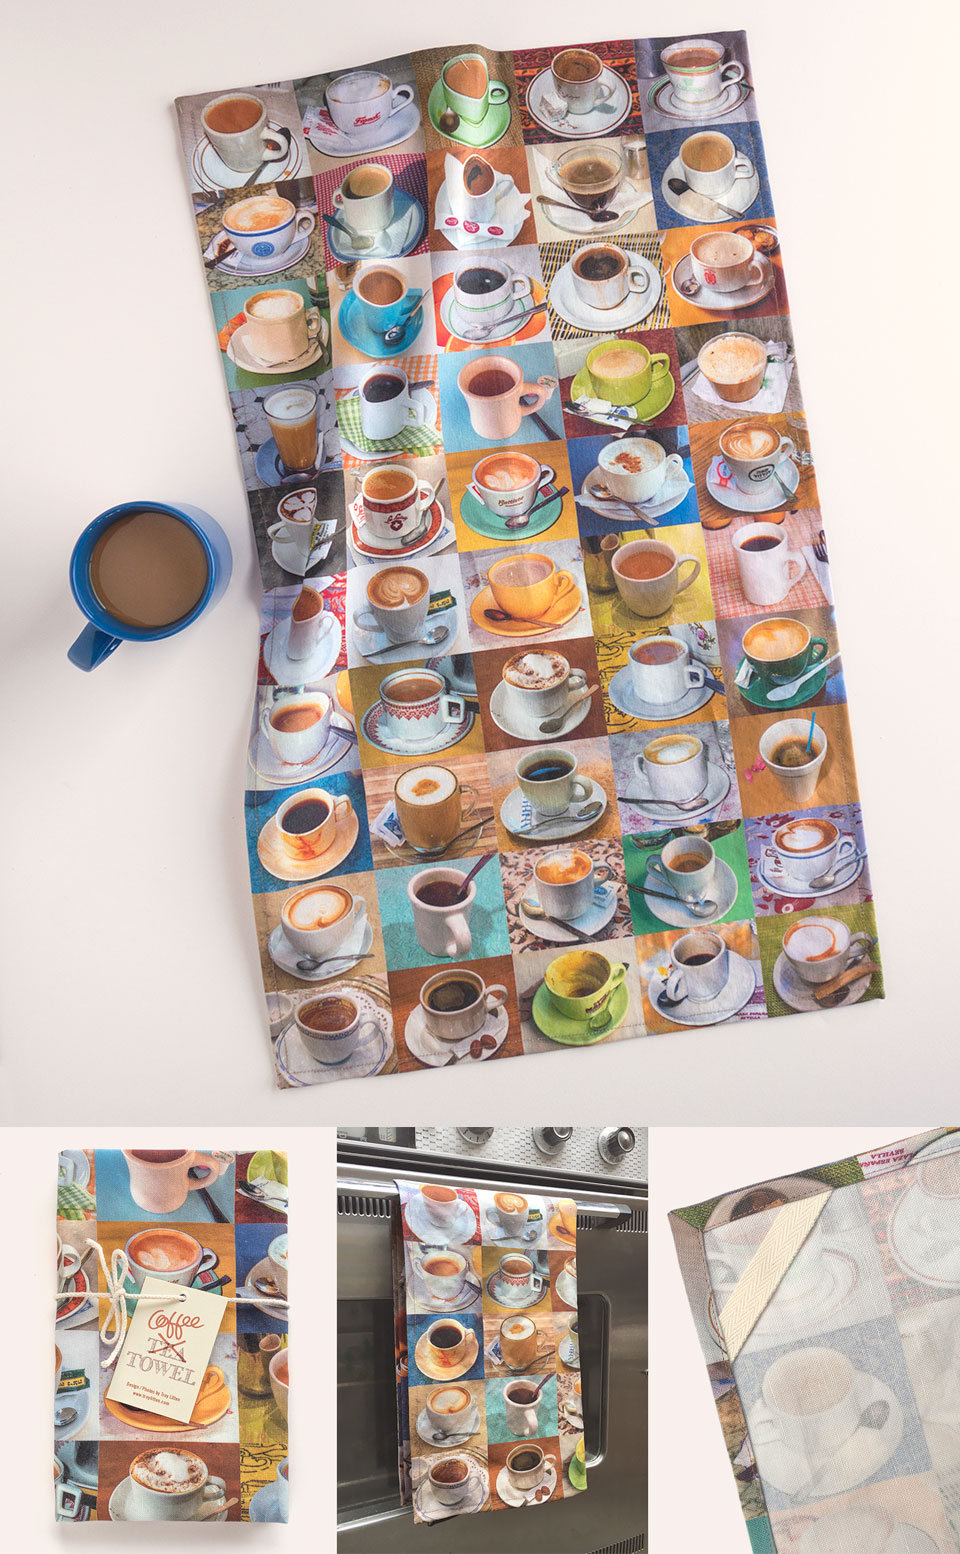 My Coffee Tea Towel features my photographs of cups of coffee from around the world printed on a linen cotton blend fabric.